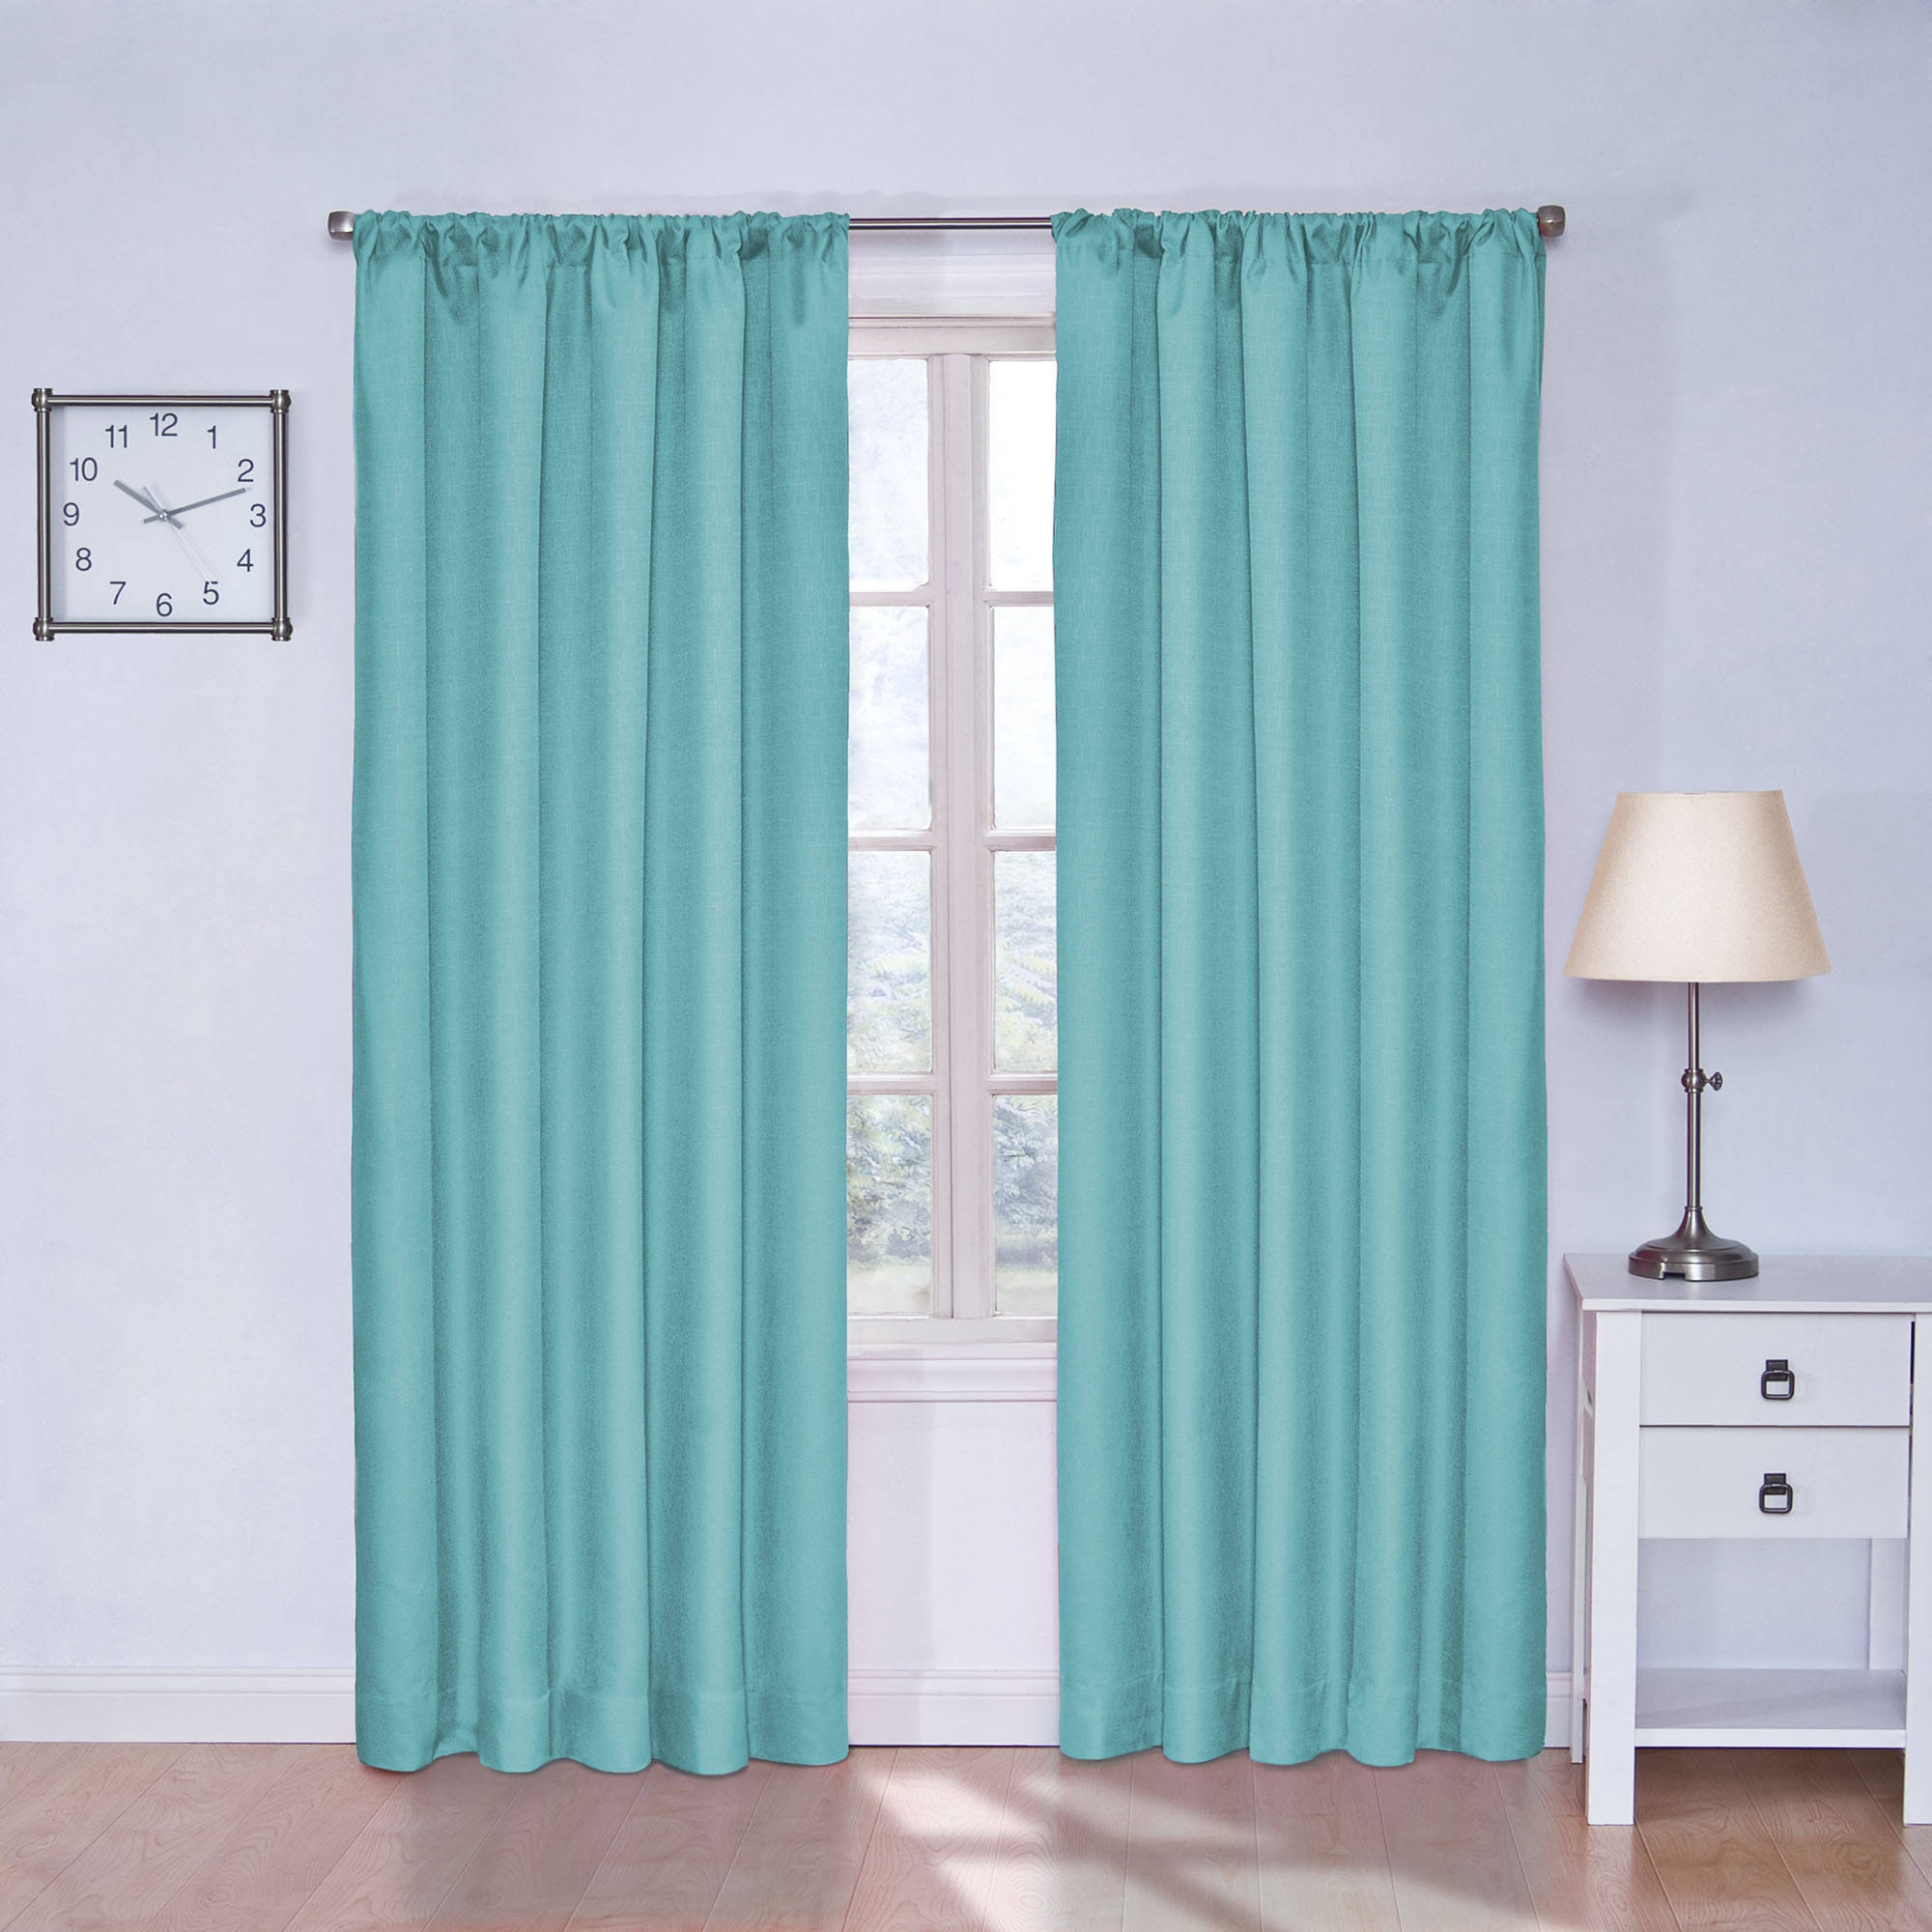 Insulated Curtain Panels Target 28 Images Advantages Of Thermal Curtains Mccurtaincounty